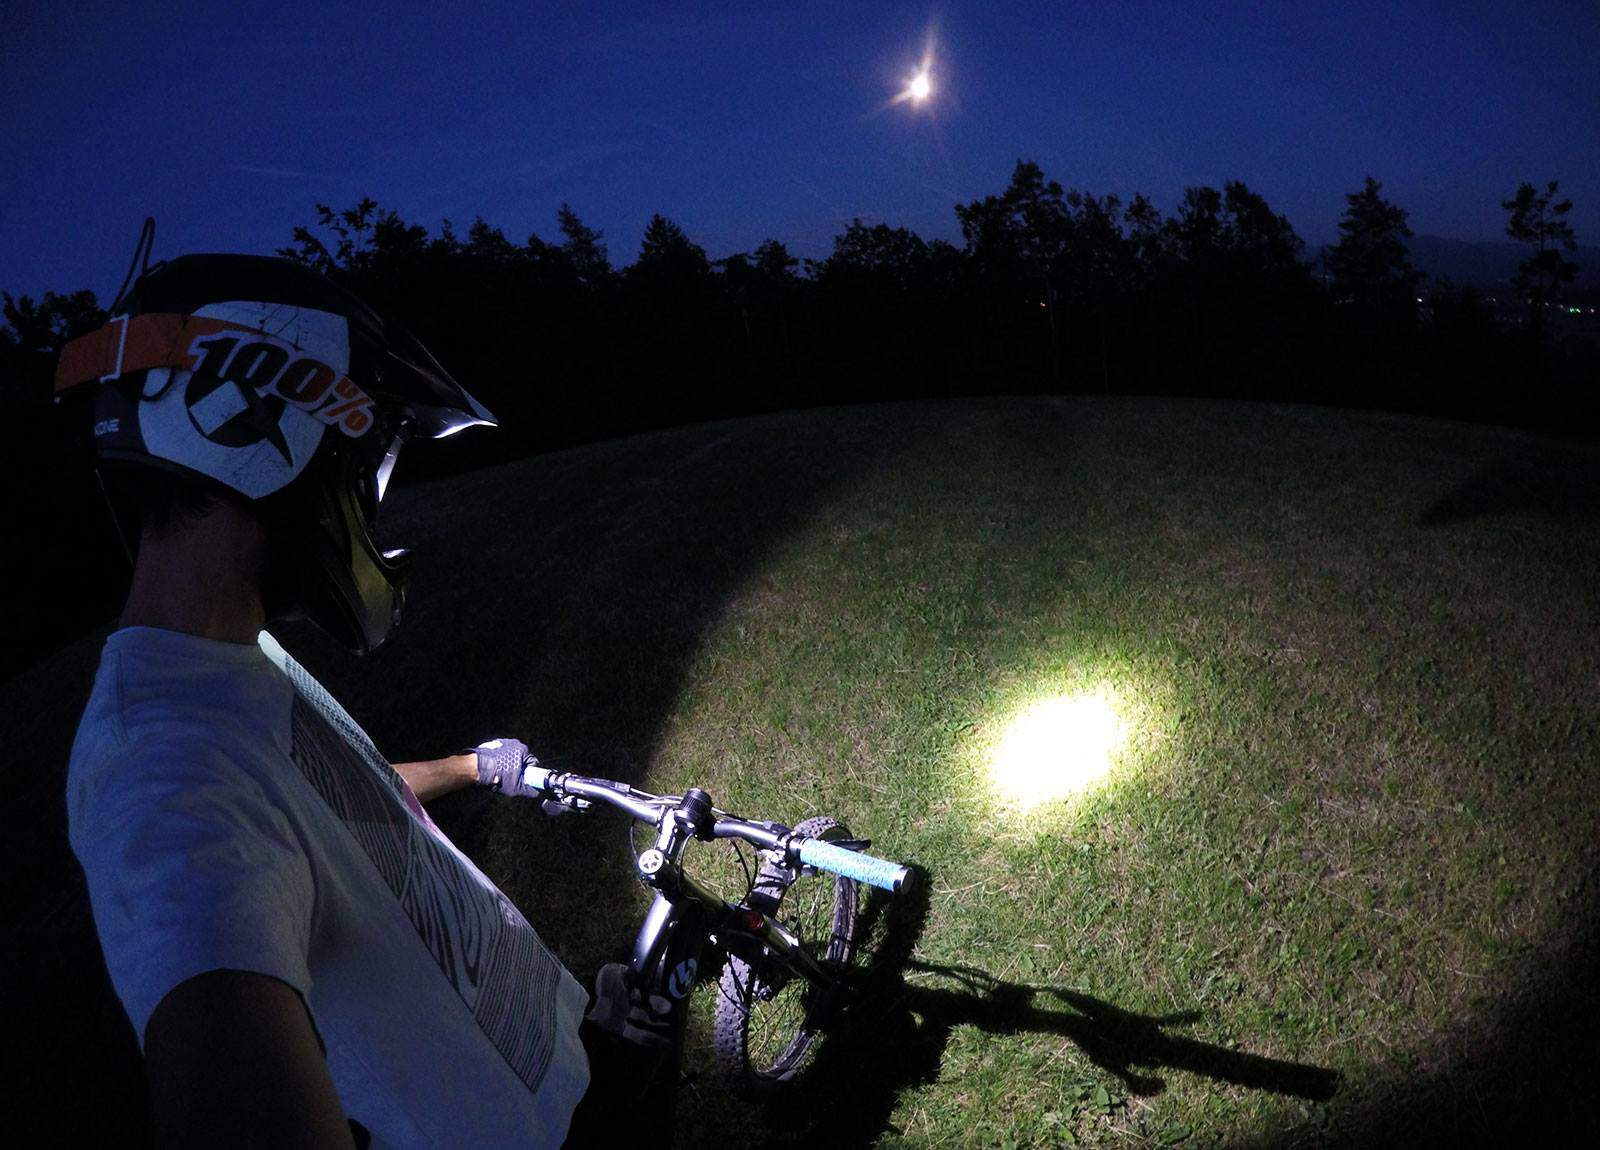 Why Do You Need A Light For Mountainbiking?